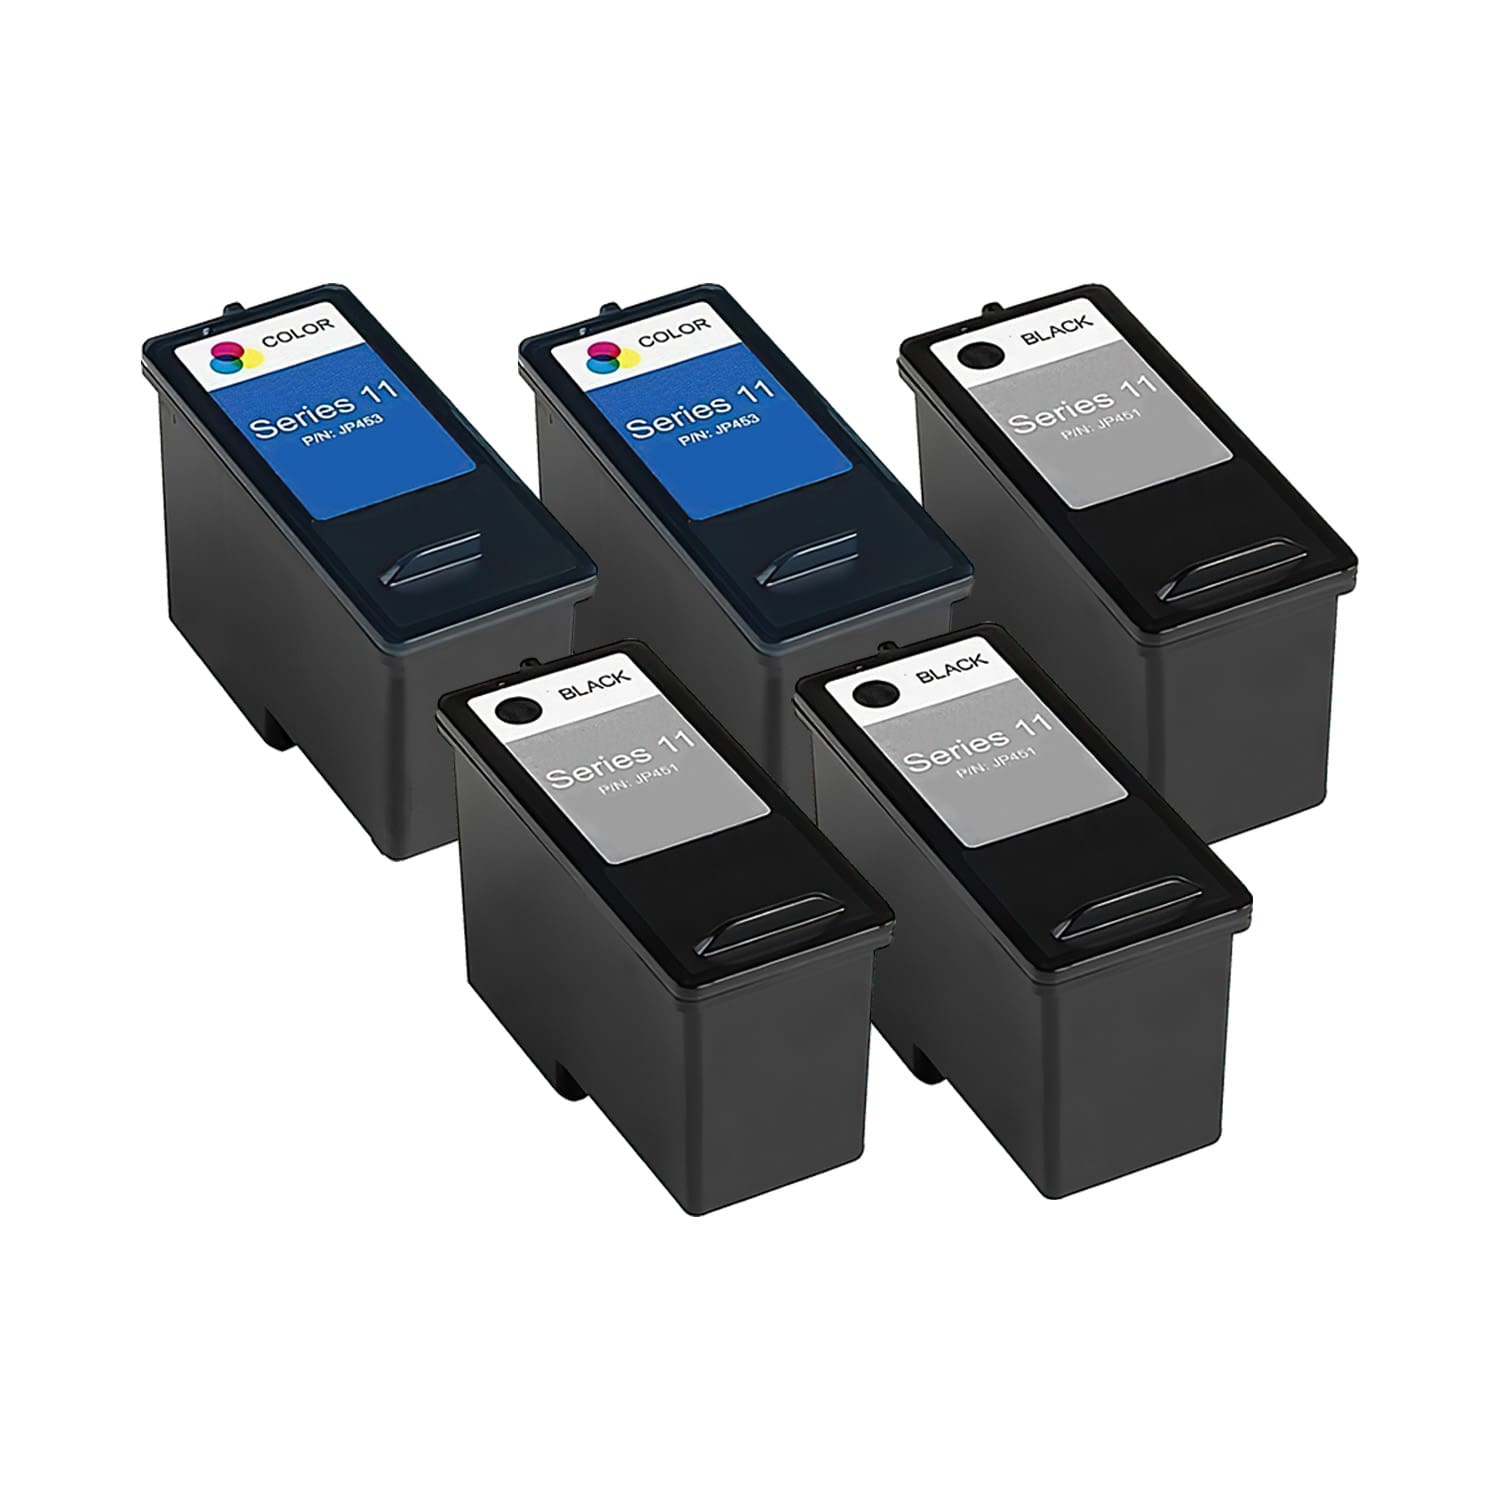 Remanufactured Dell Series 11 Inkjet High Capacity Pack - 5 Cartridges